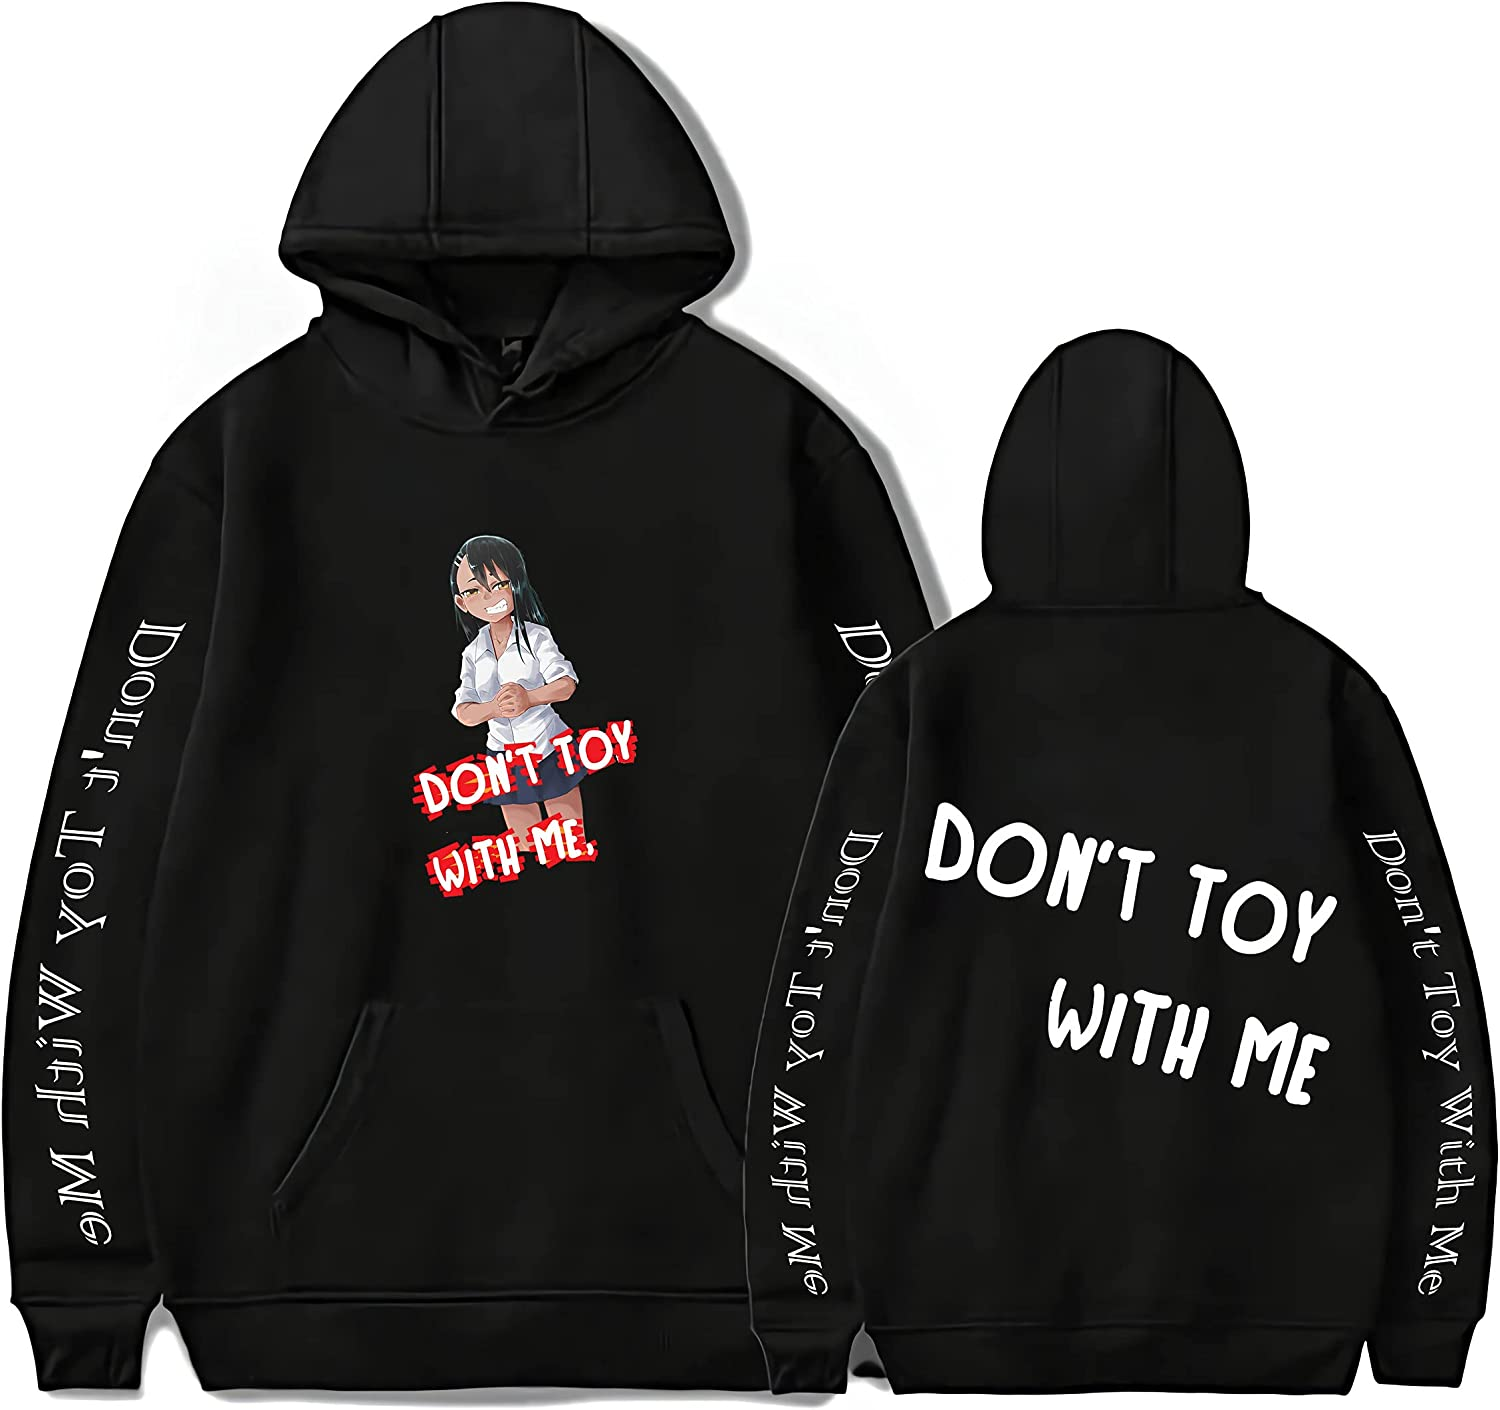 Jingclor Unisex Anime Don't Toy With Me, Miss Nagatoro Hoodie Sweatshirt Pullovers Hooded hoodies For Adult/Yonth